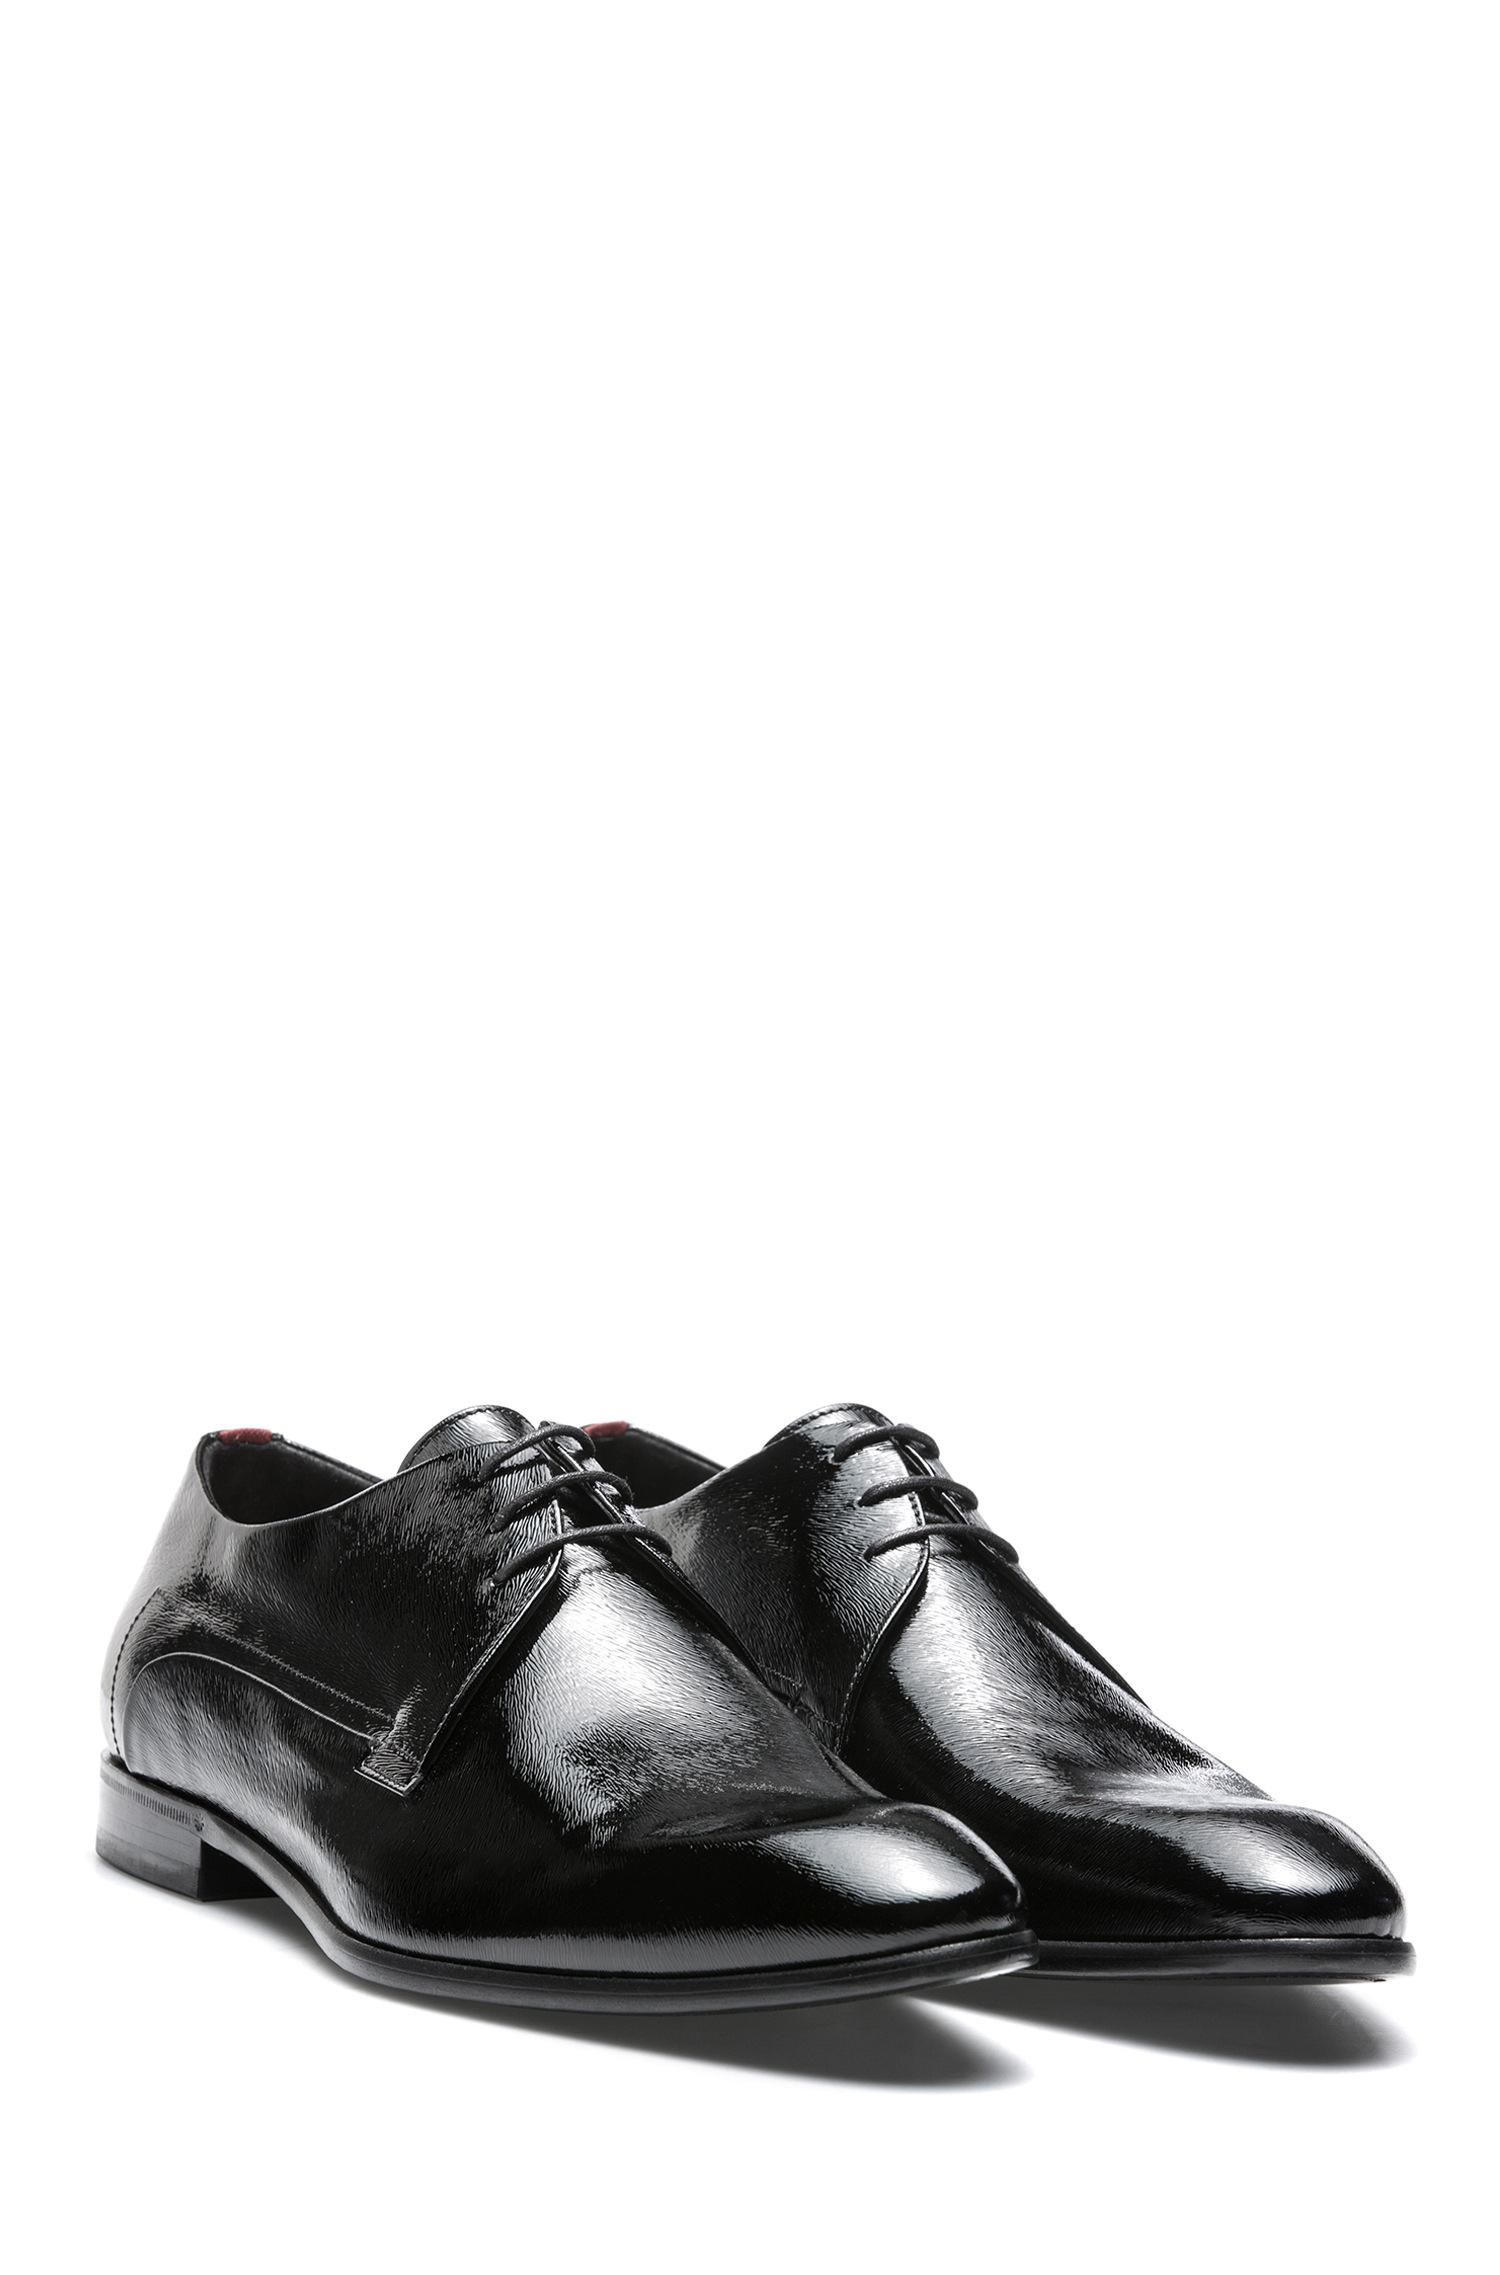 Leather-soled Derby shoes in pony-print patent leather HUGO BOSS OPbIBcUypX